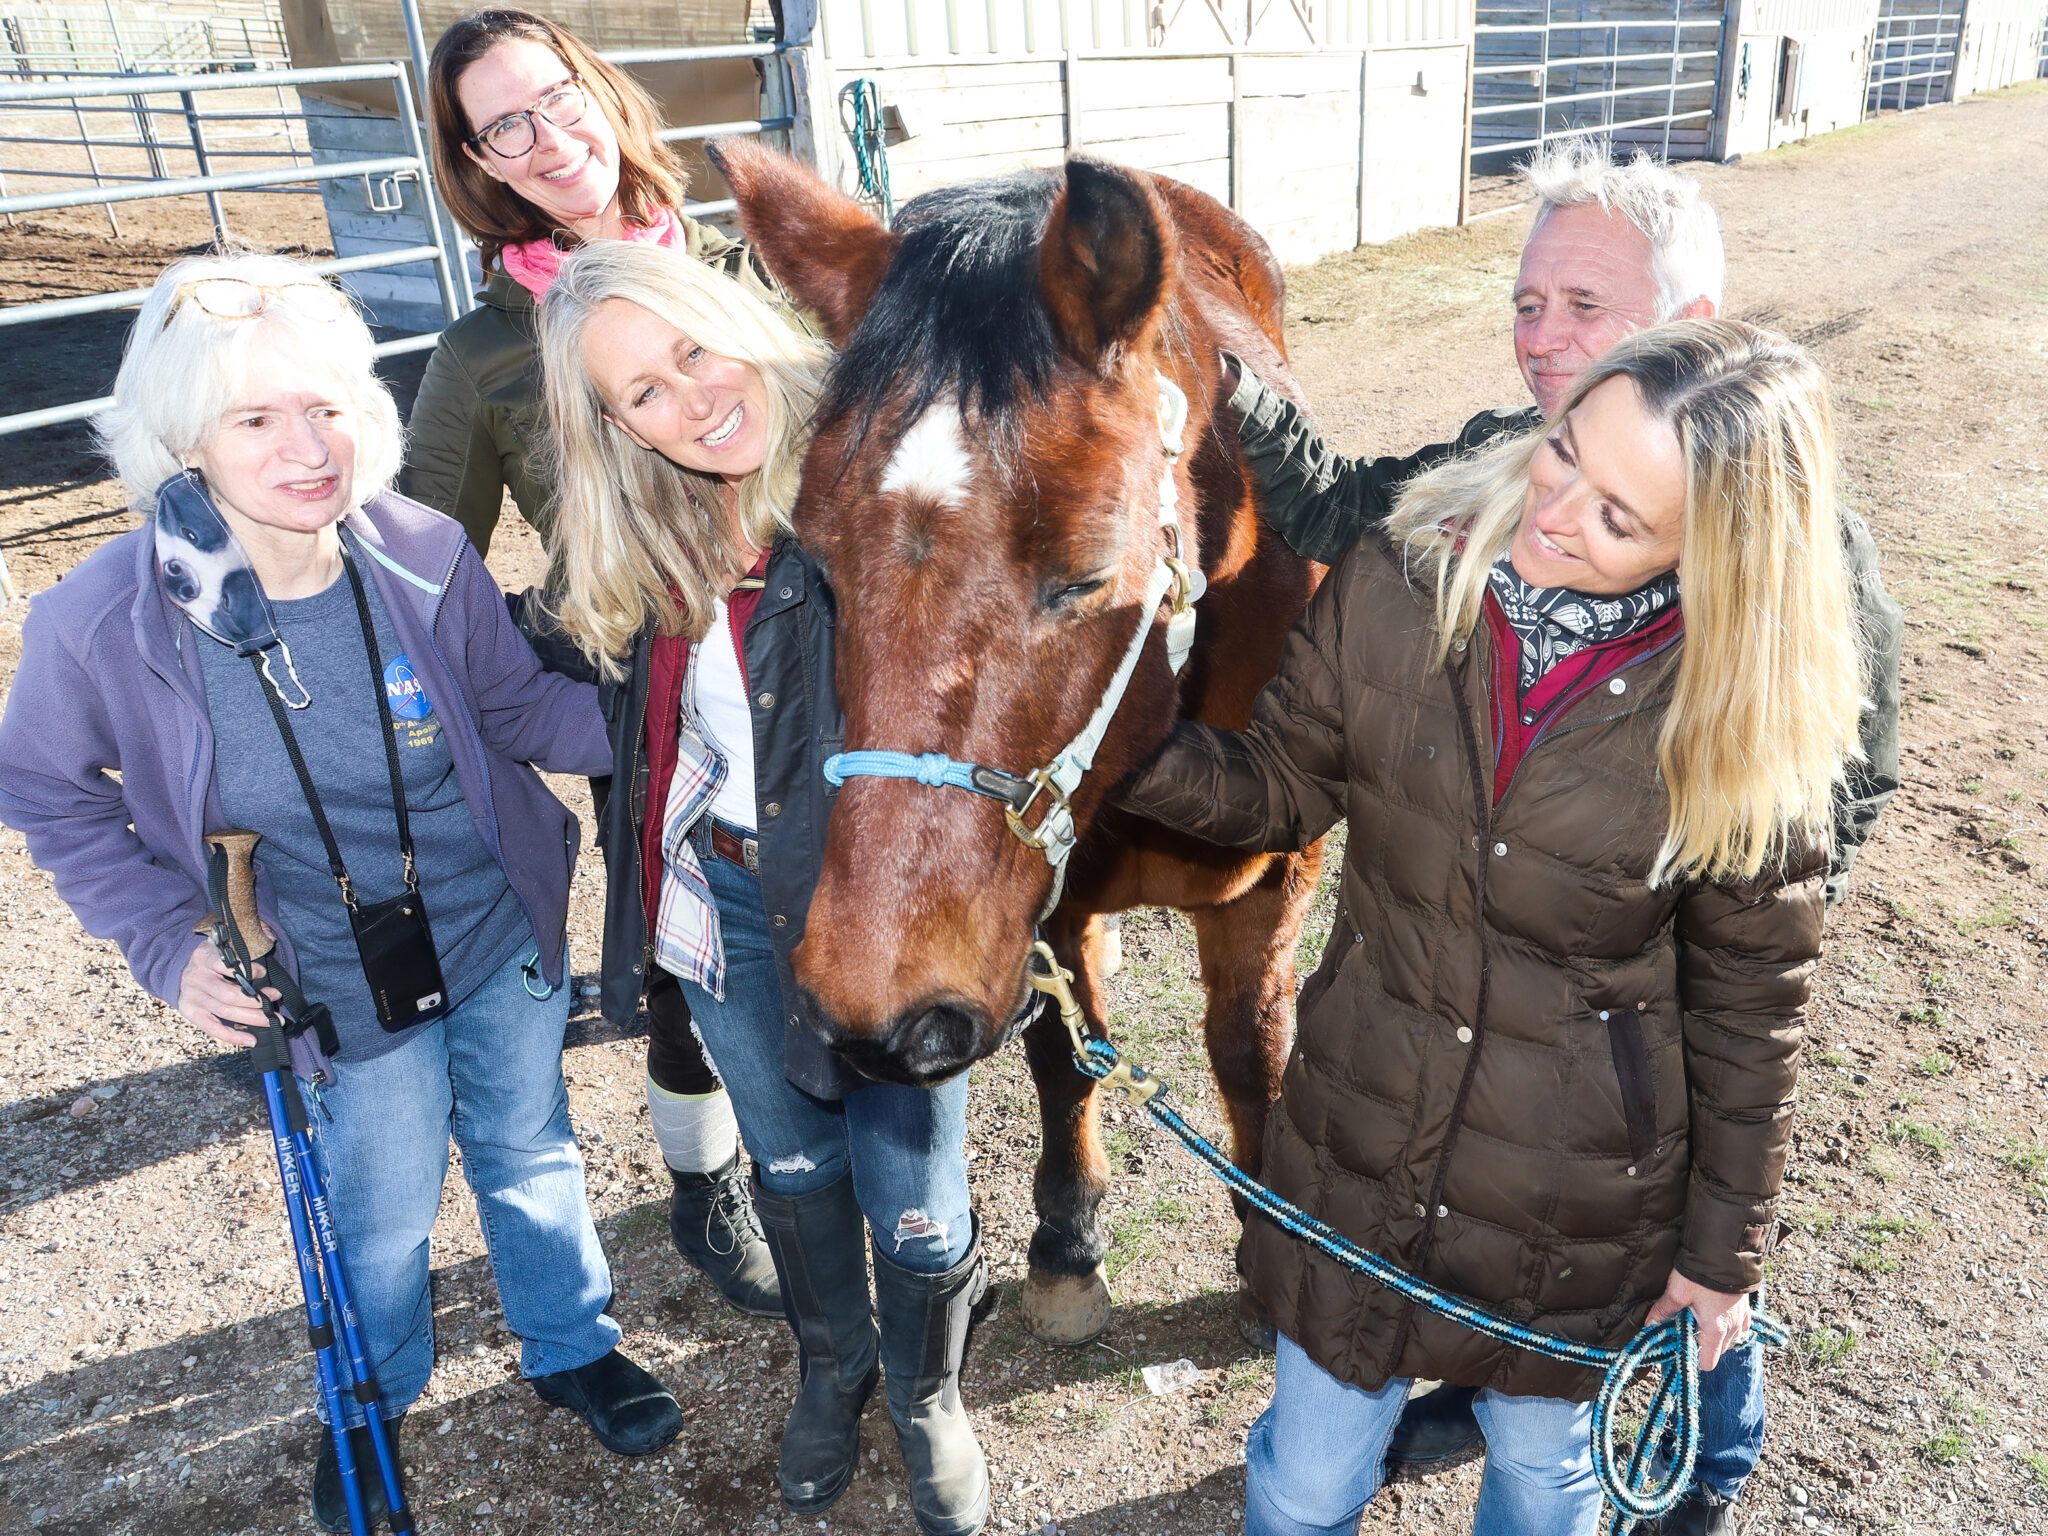 Horses and Healing — Aspen Business Connect Member Profiles By Austin Colbert